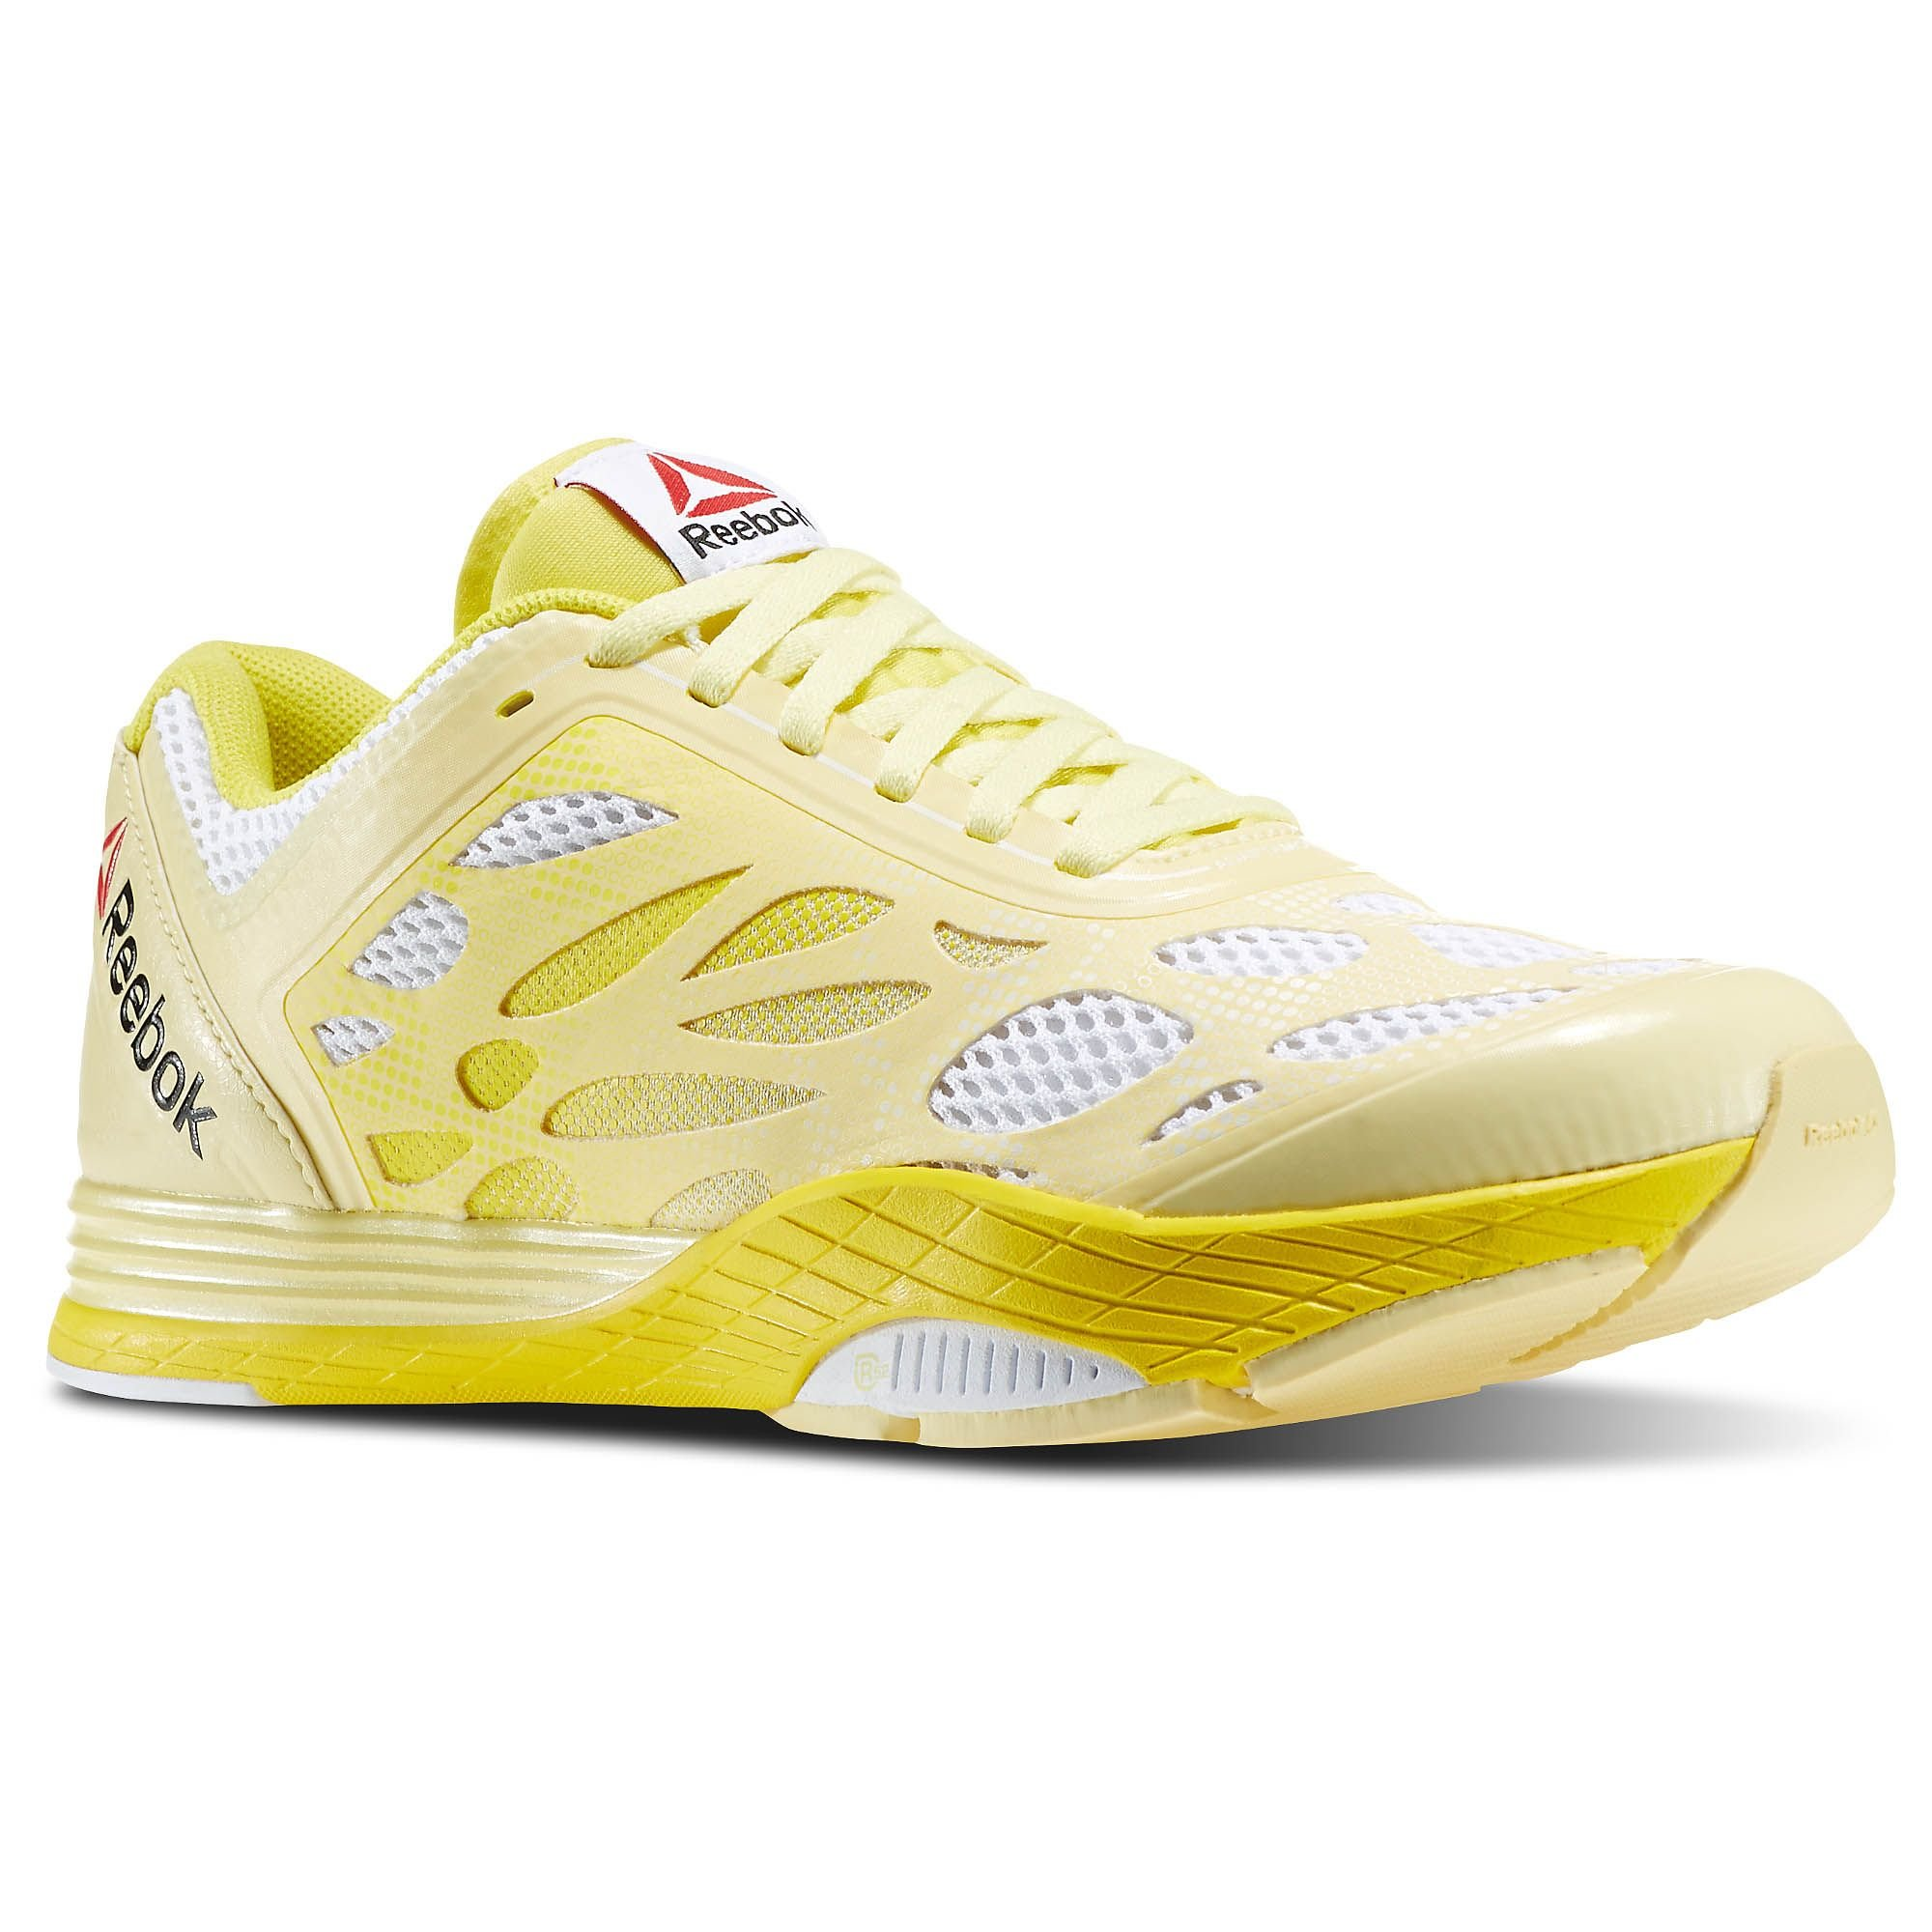 Reebok Womens Studio LM Les Mills Cardio Ultra Dance Shoes in White/Yellow Filament Size 9